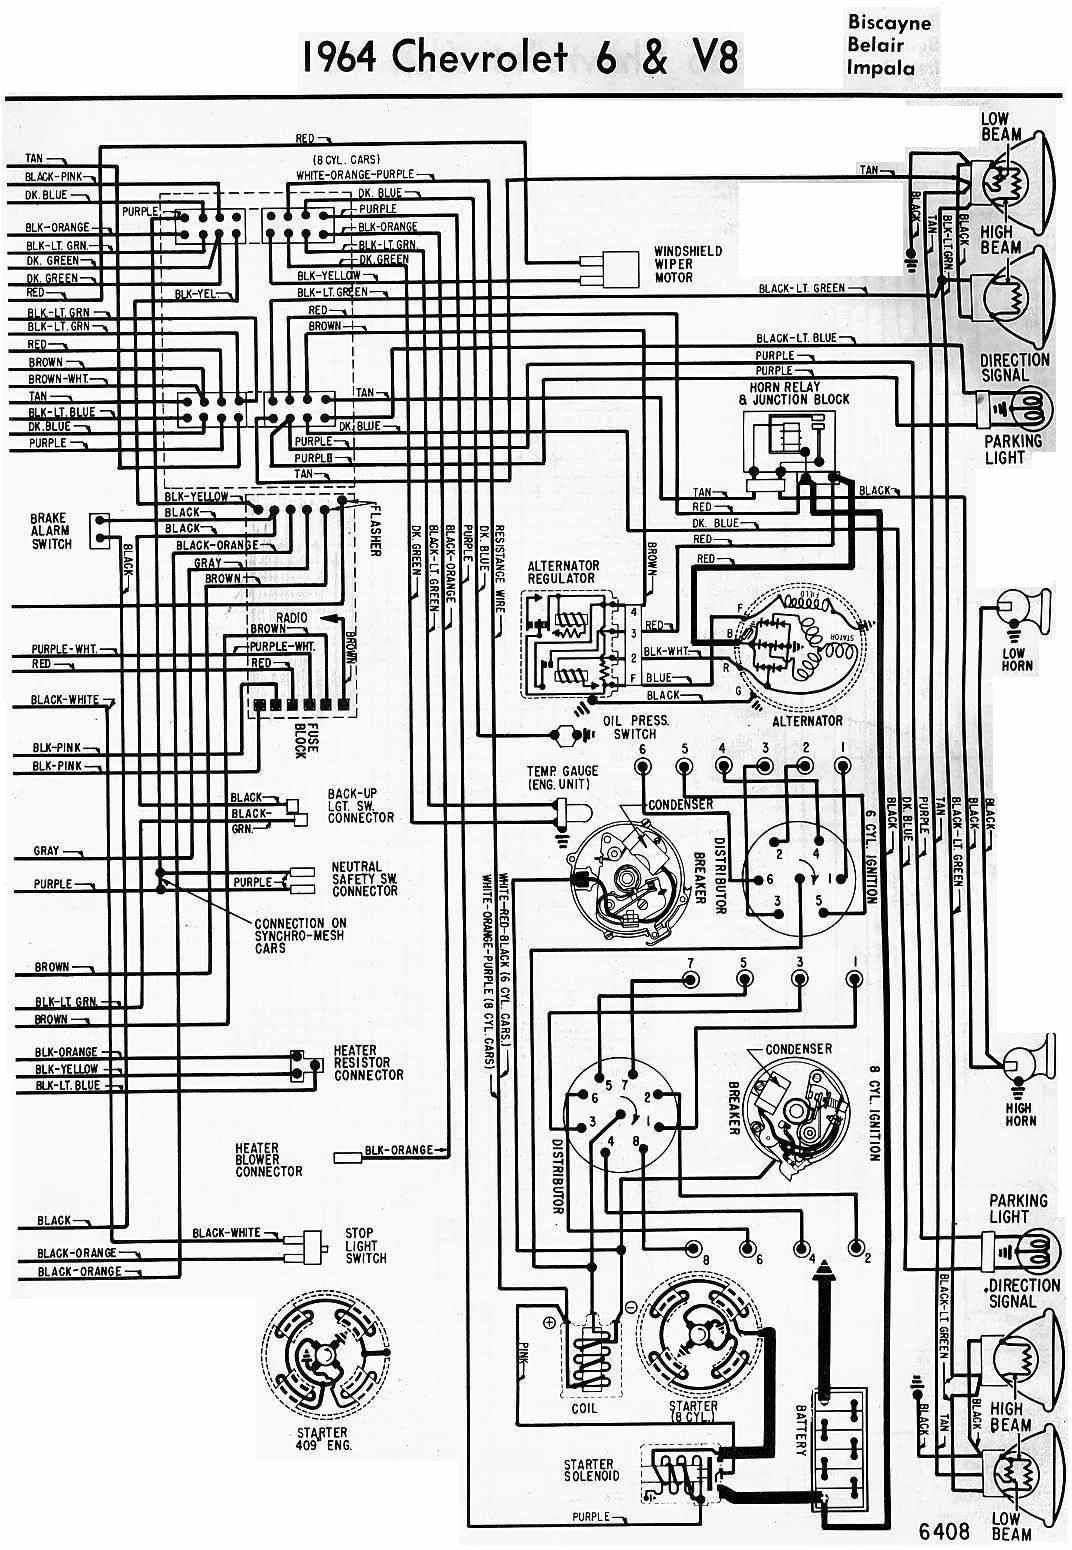 55 Chevy Fuse Box Diagram Electrical Wiring Diagram Of 1964 Chevrolet 6 And V8 All